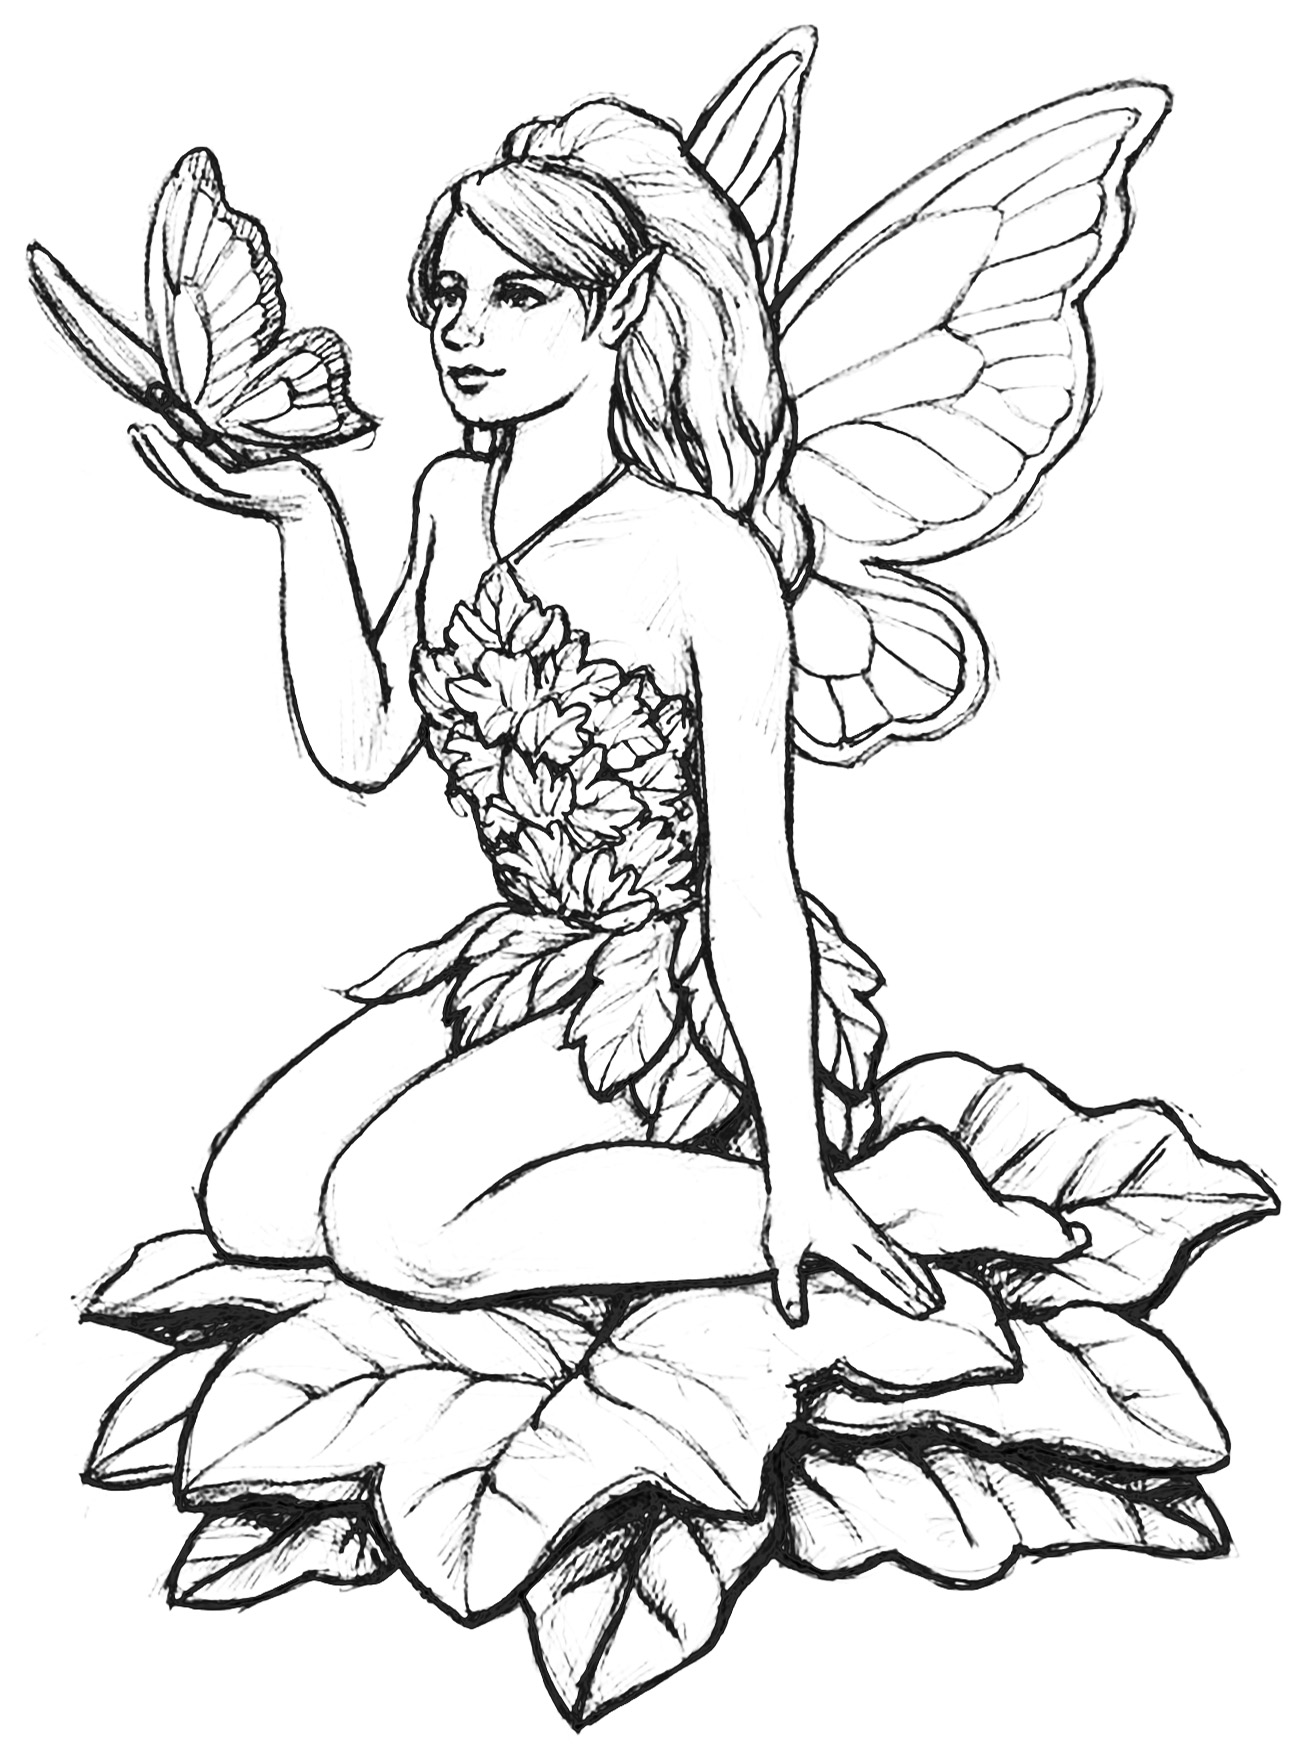 Fairy - Coloring Pages for Adults